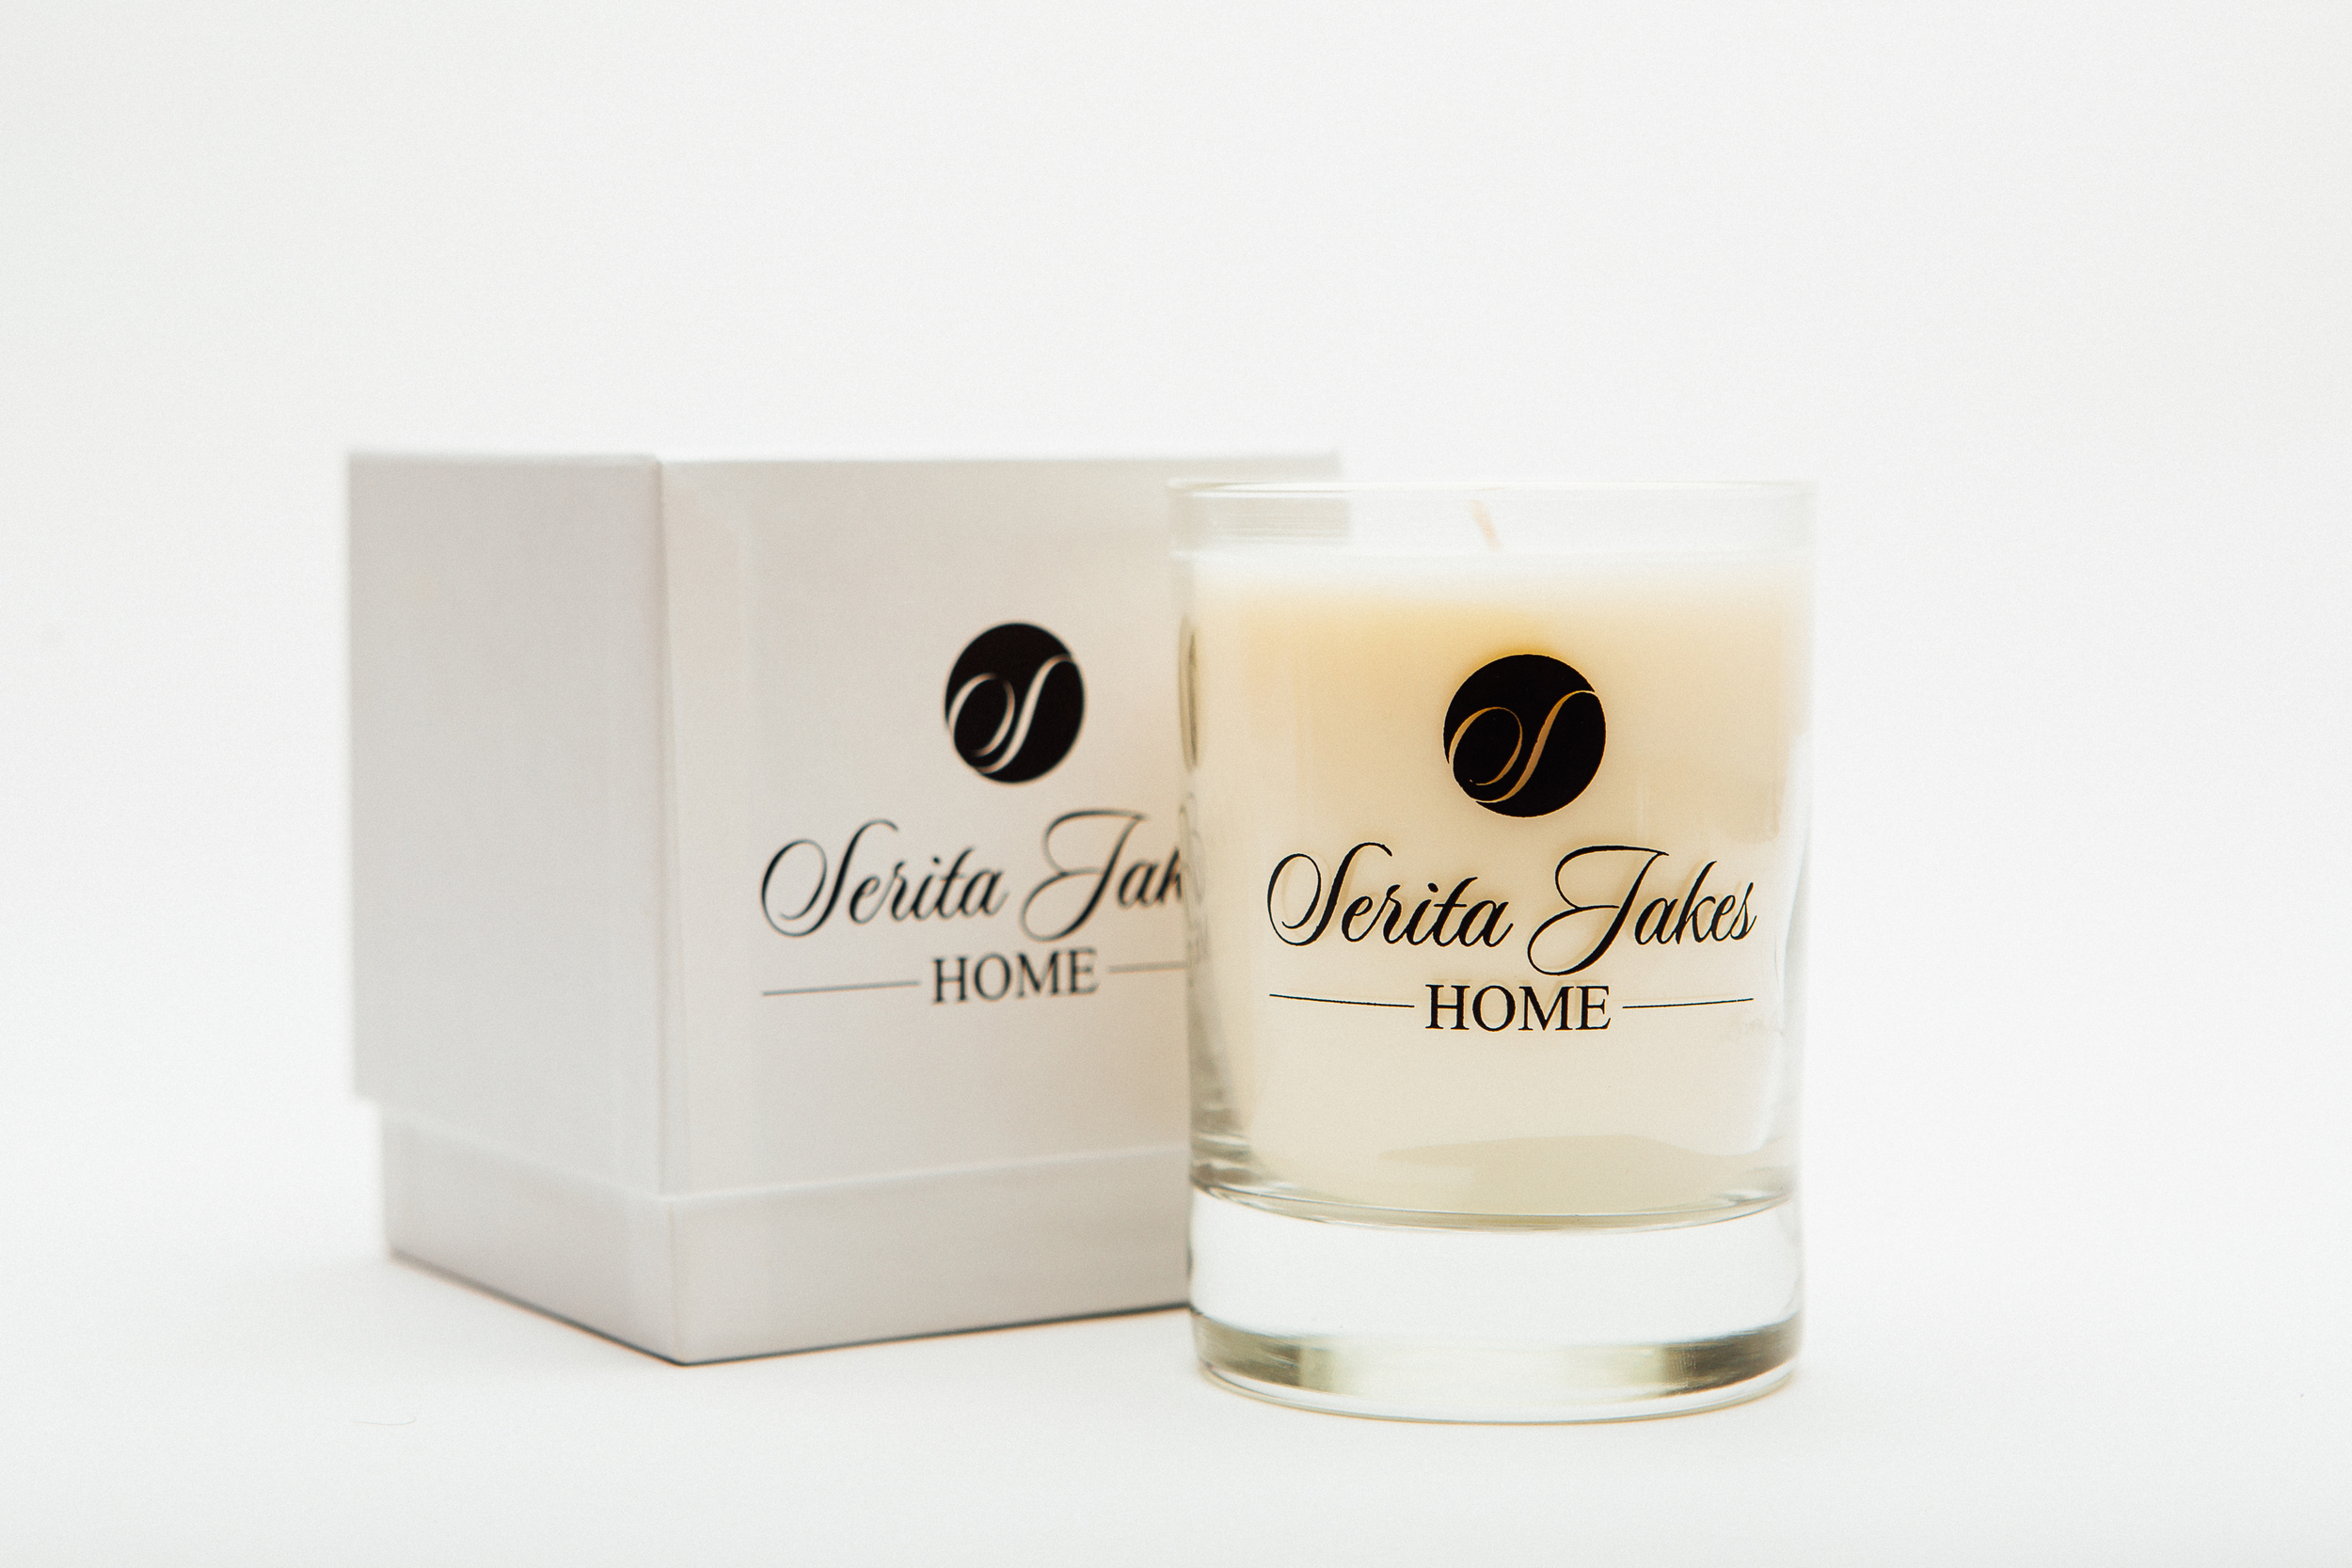 10.5 ounce Peace candle